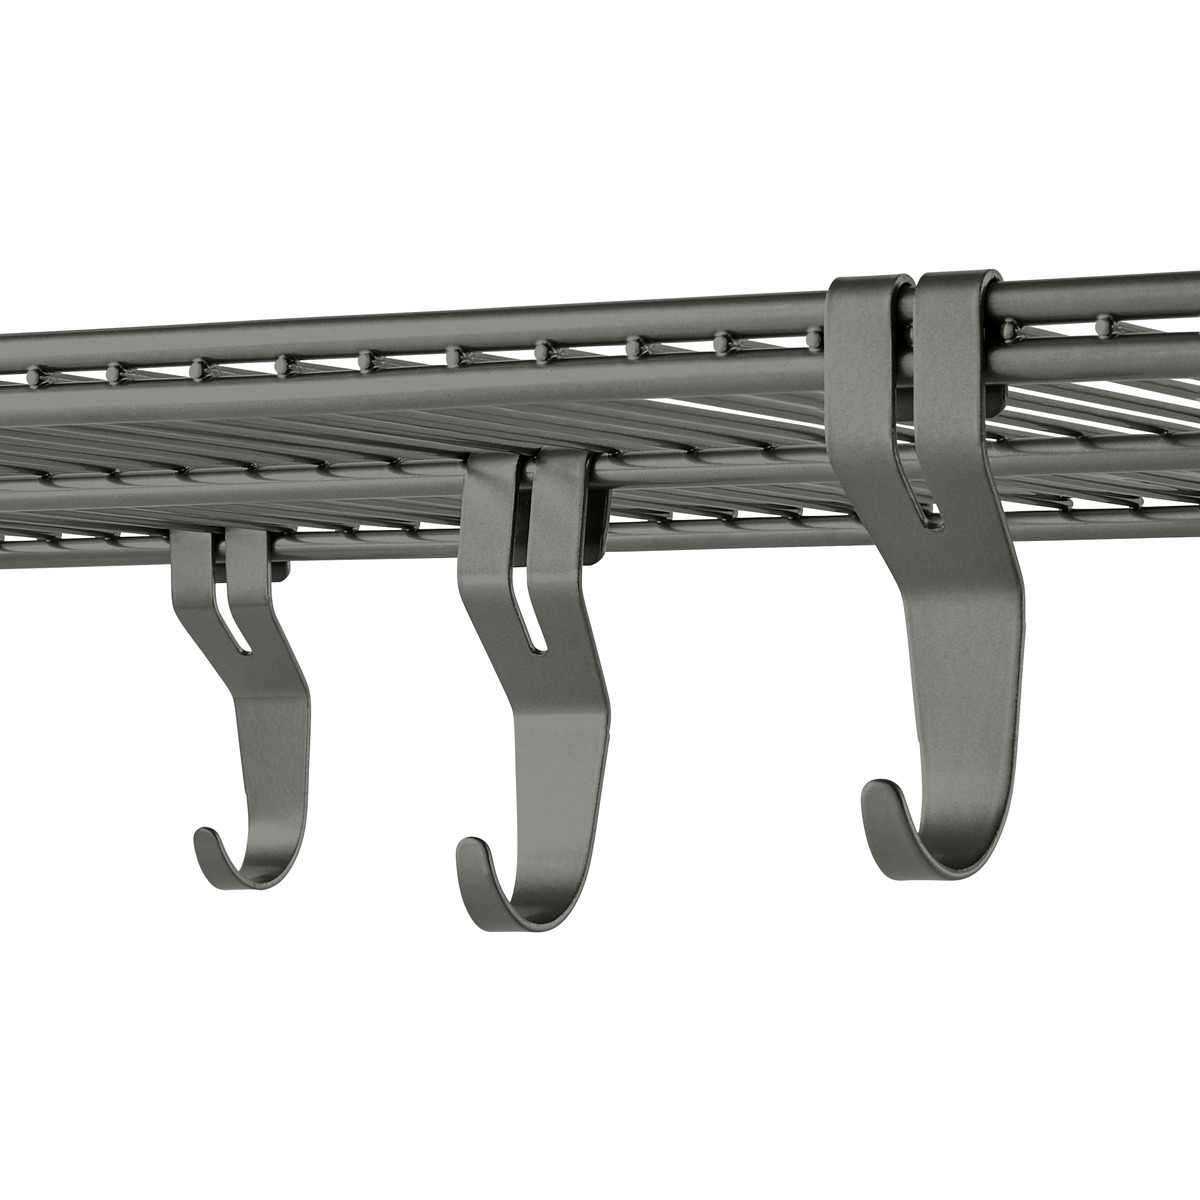 Graphite Elfa Shelf Hooks